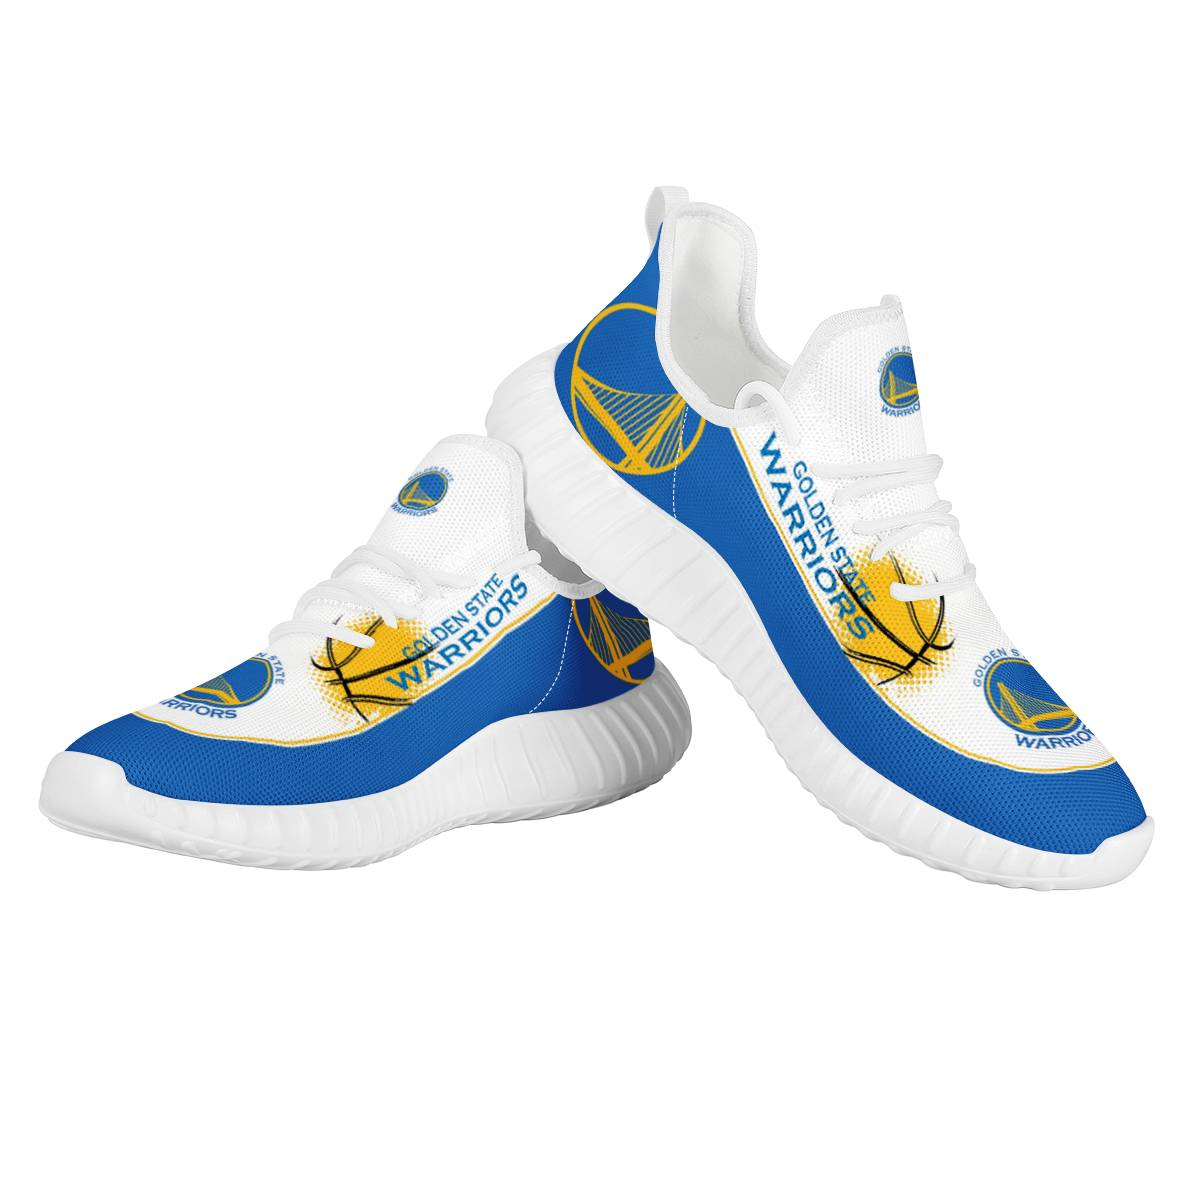 Women's Golden State Warriors Mesh Knit Sneakers/Shoes 002